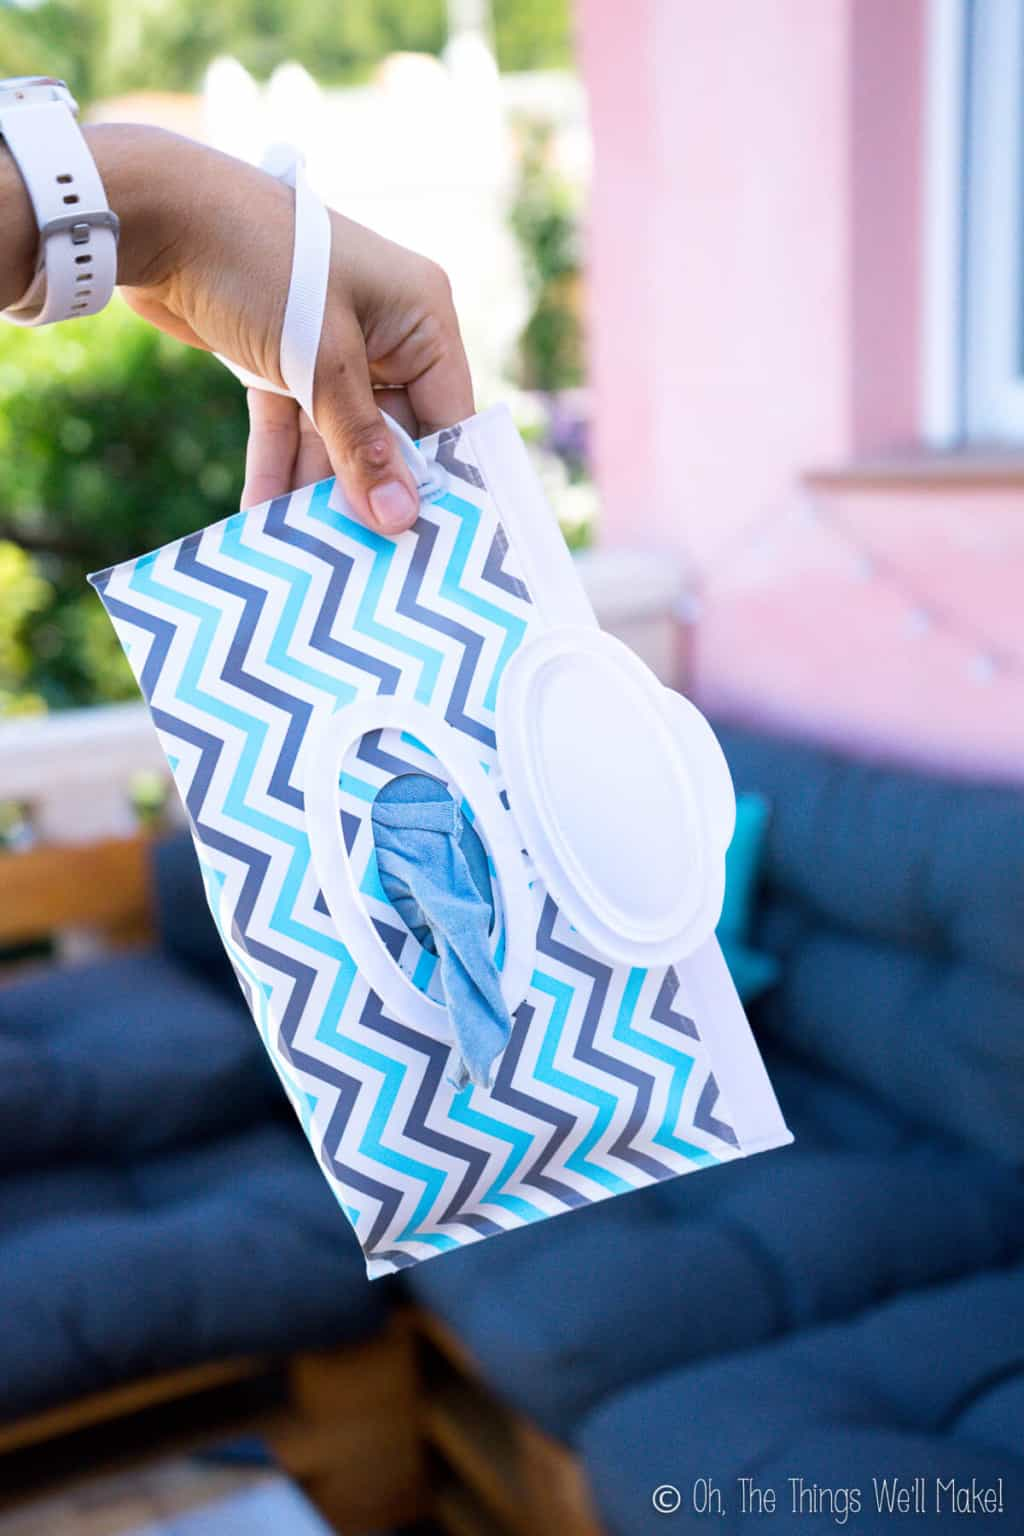 A hand holding onto a chevron printed plastic pouch wipes dispenser open with a cloth wipe peaking out.